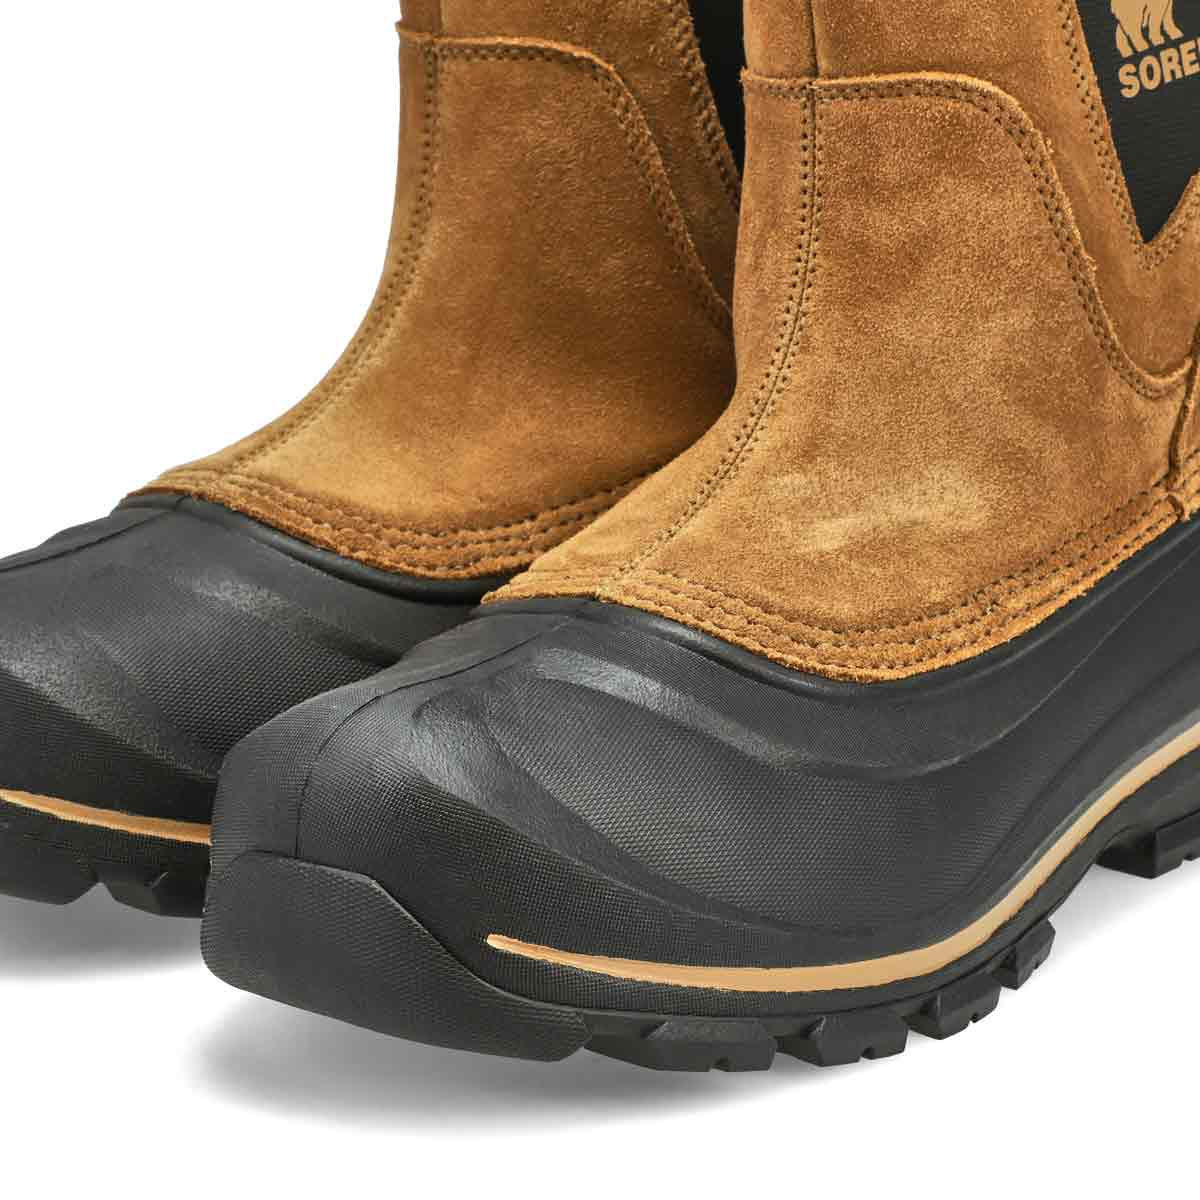 Botte d'hiver Buxton Pull On, delta, hom